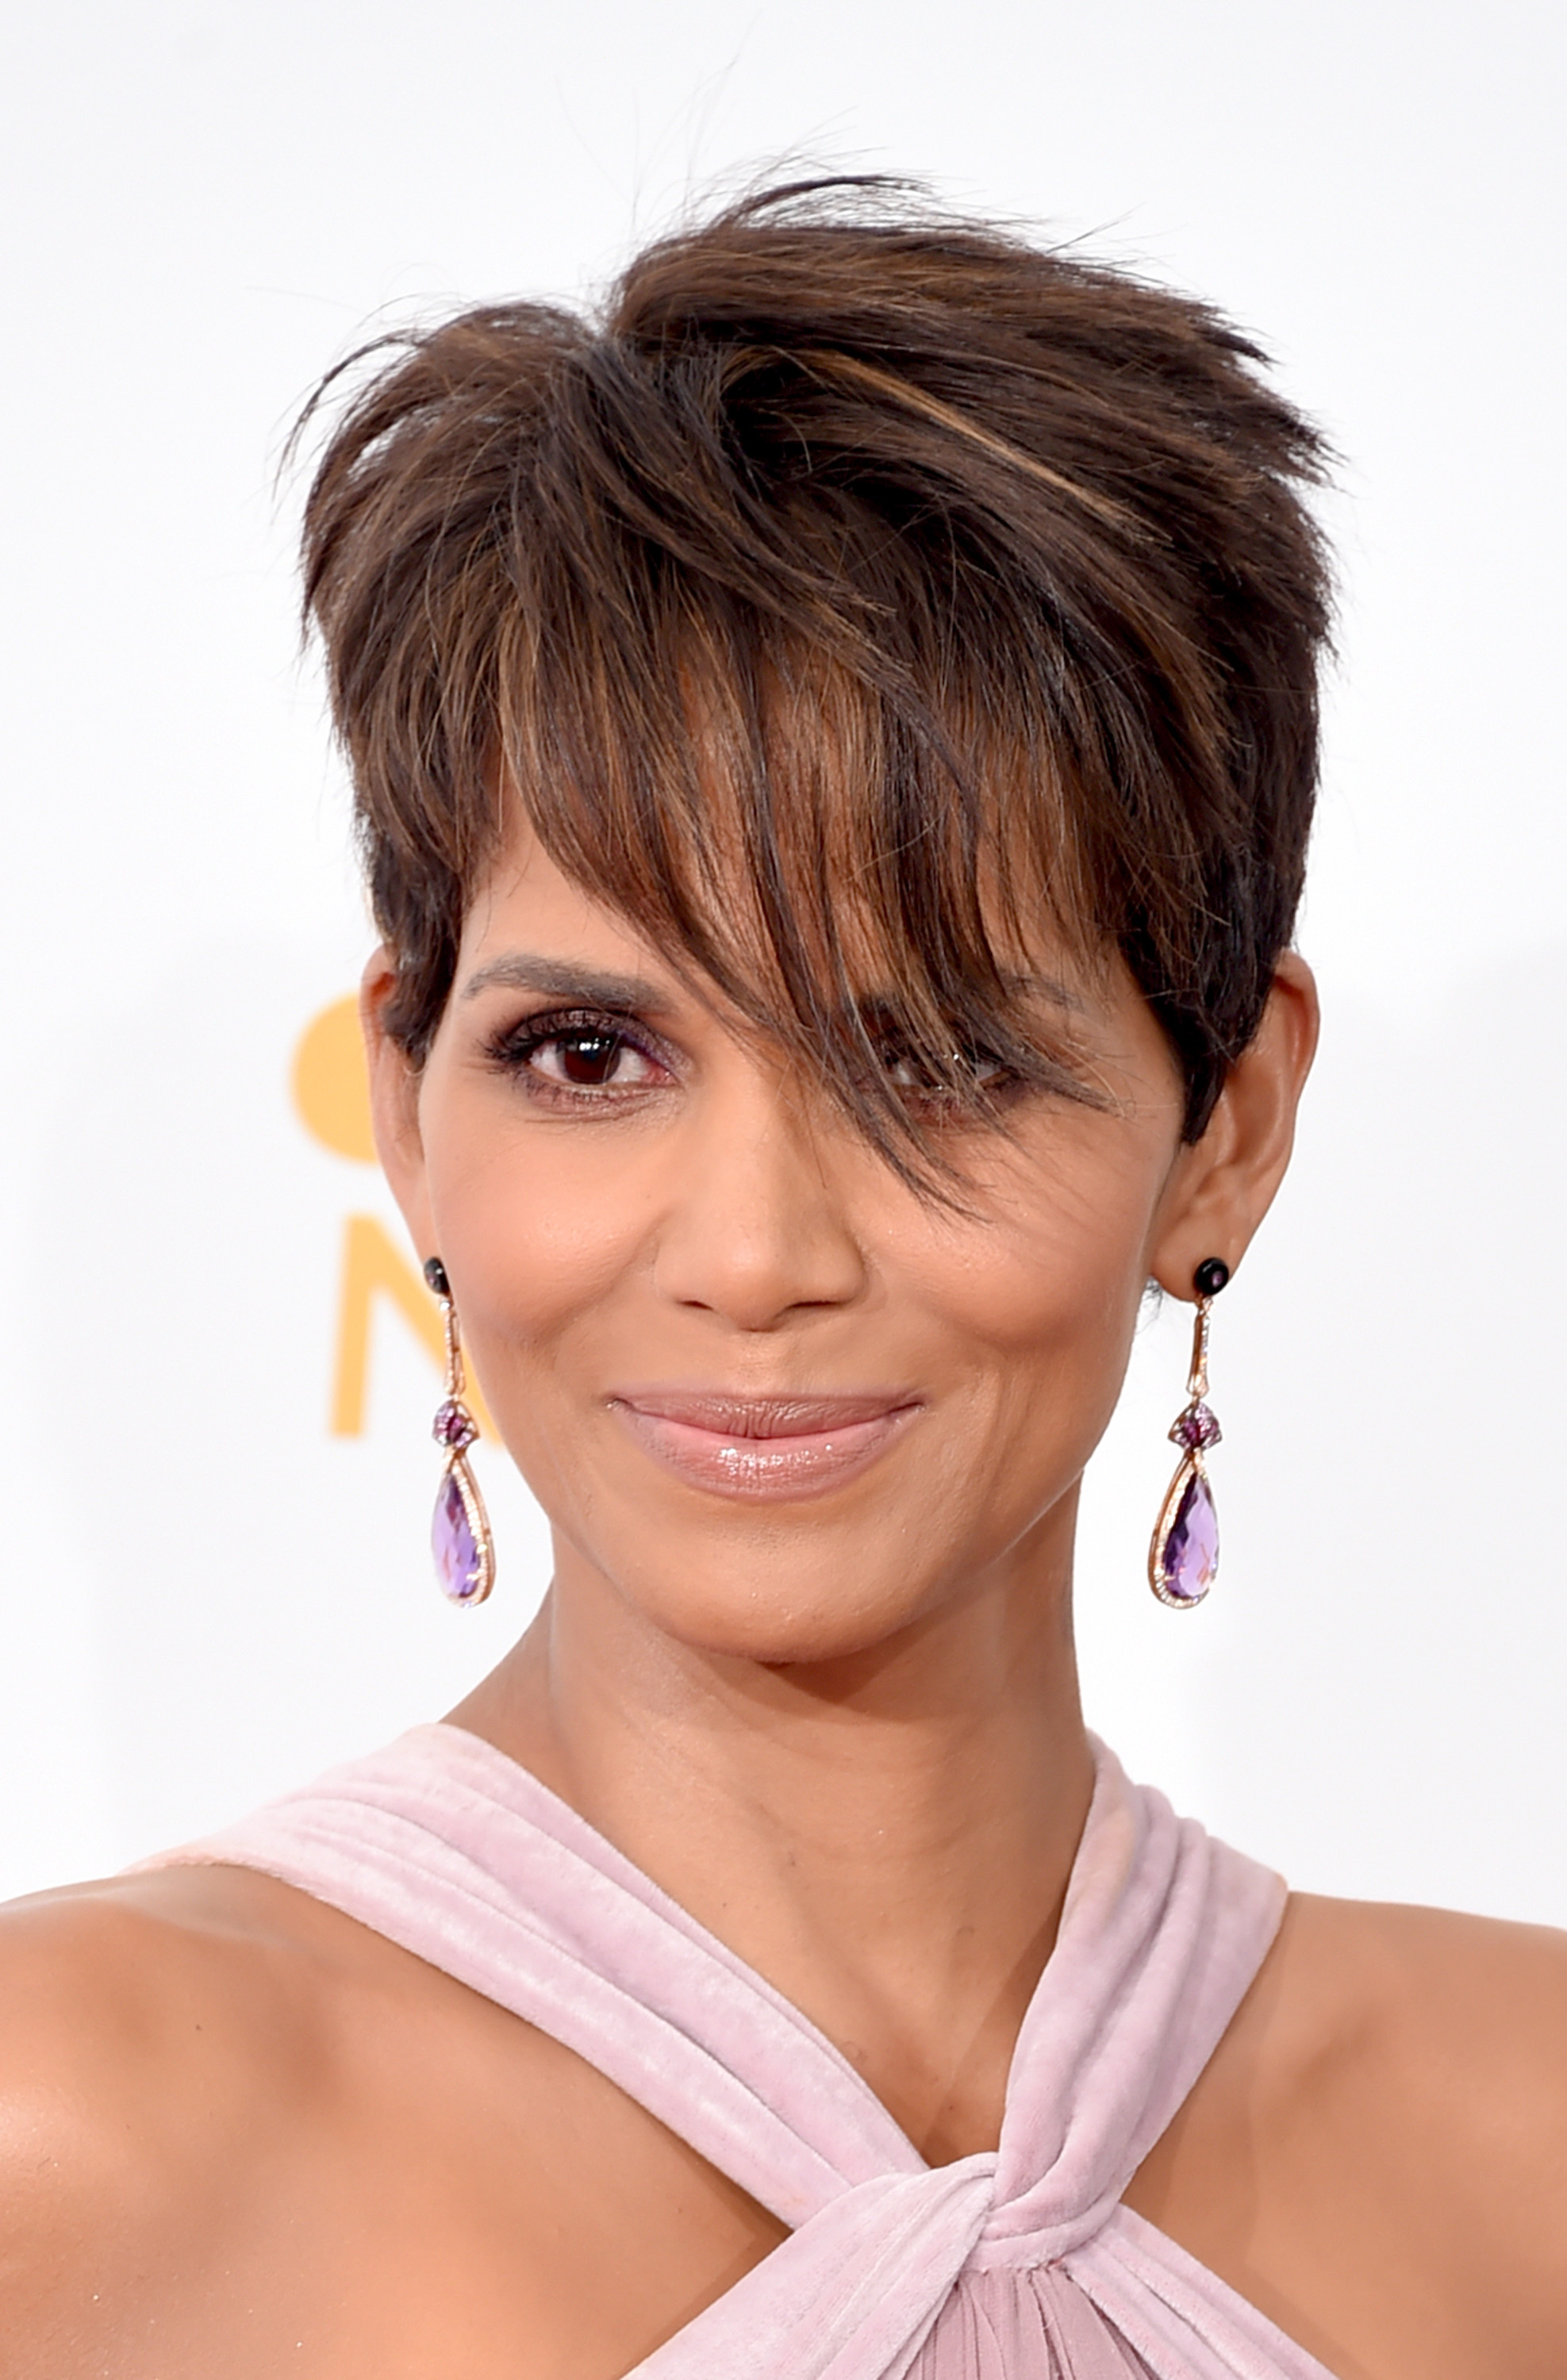 38 best short pixie cut hairstyles 2017 - cute pixie haircuts for